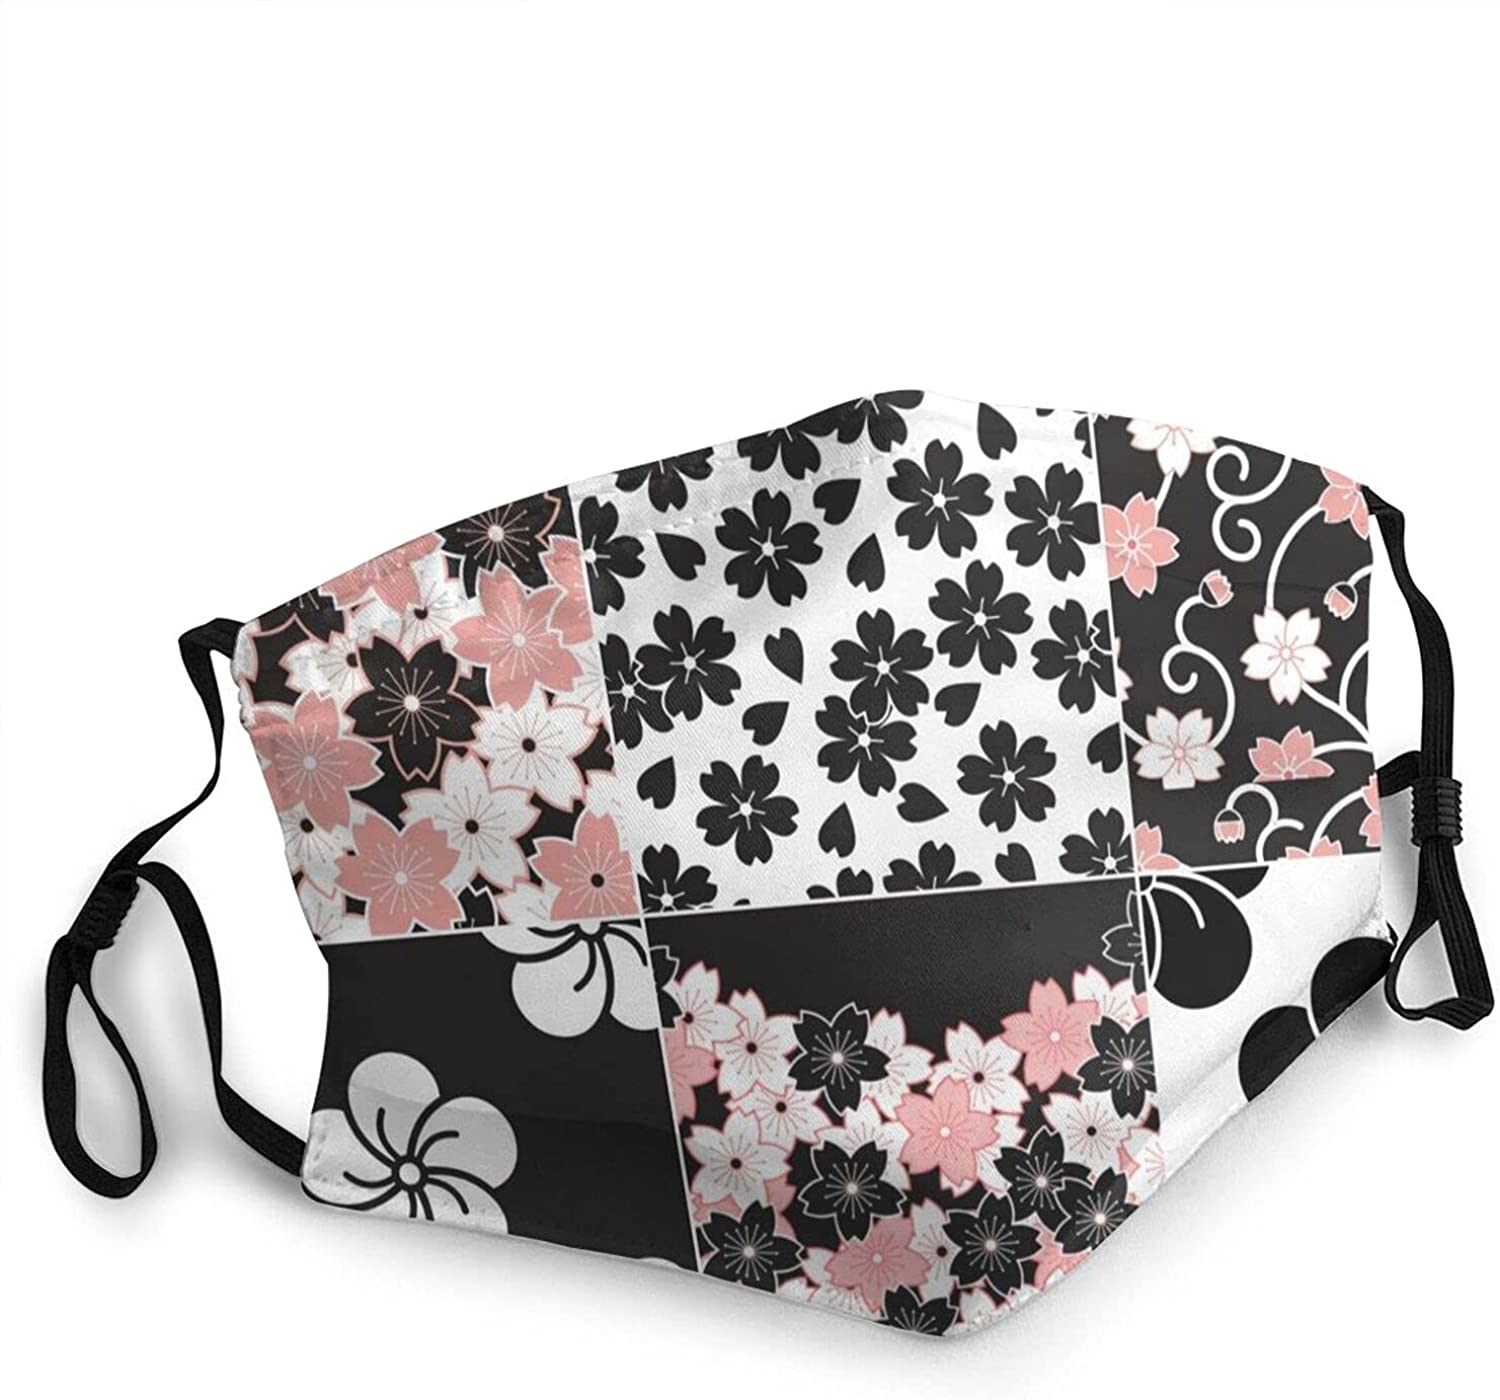 CURANI Sakura Flowers Reusable Bandana Popular products Mask Mouth Face Cove Fresno Mall with